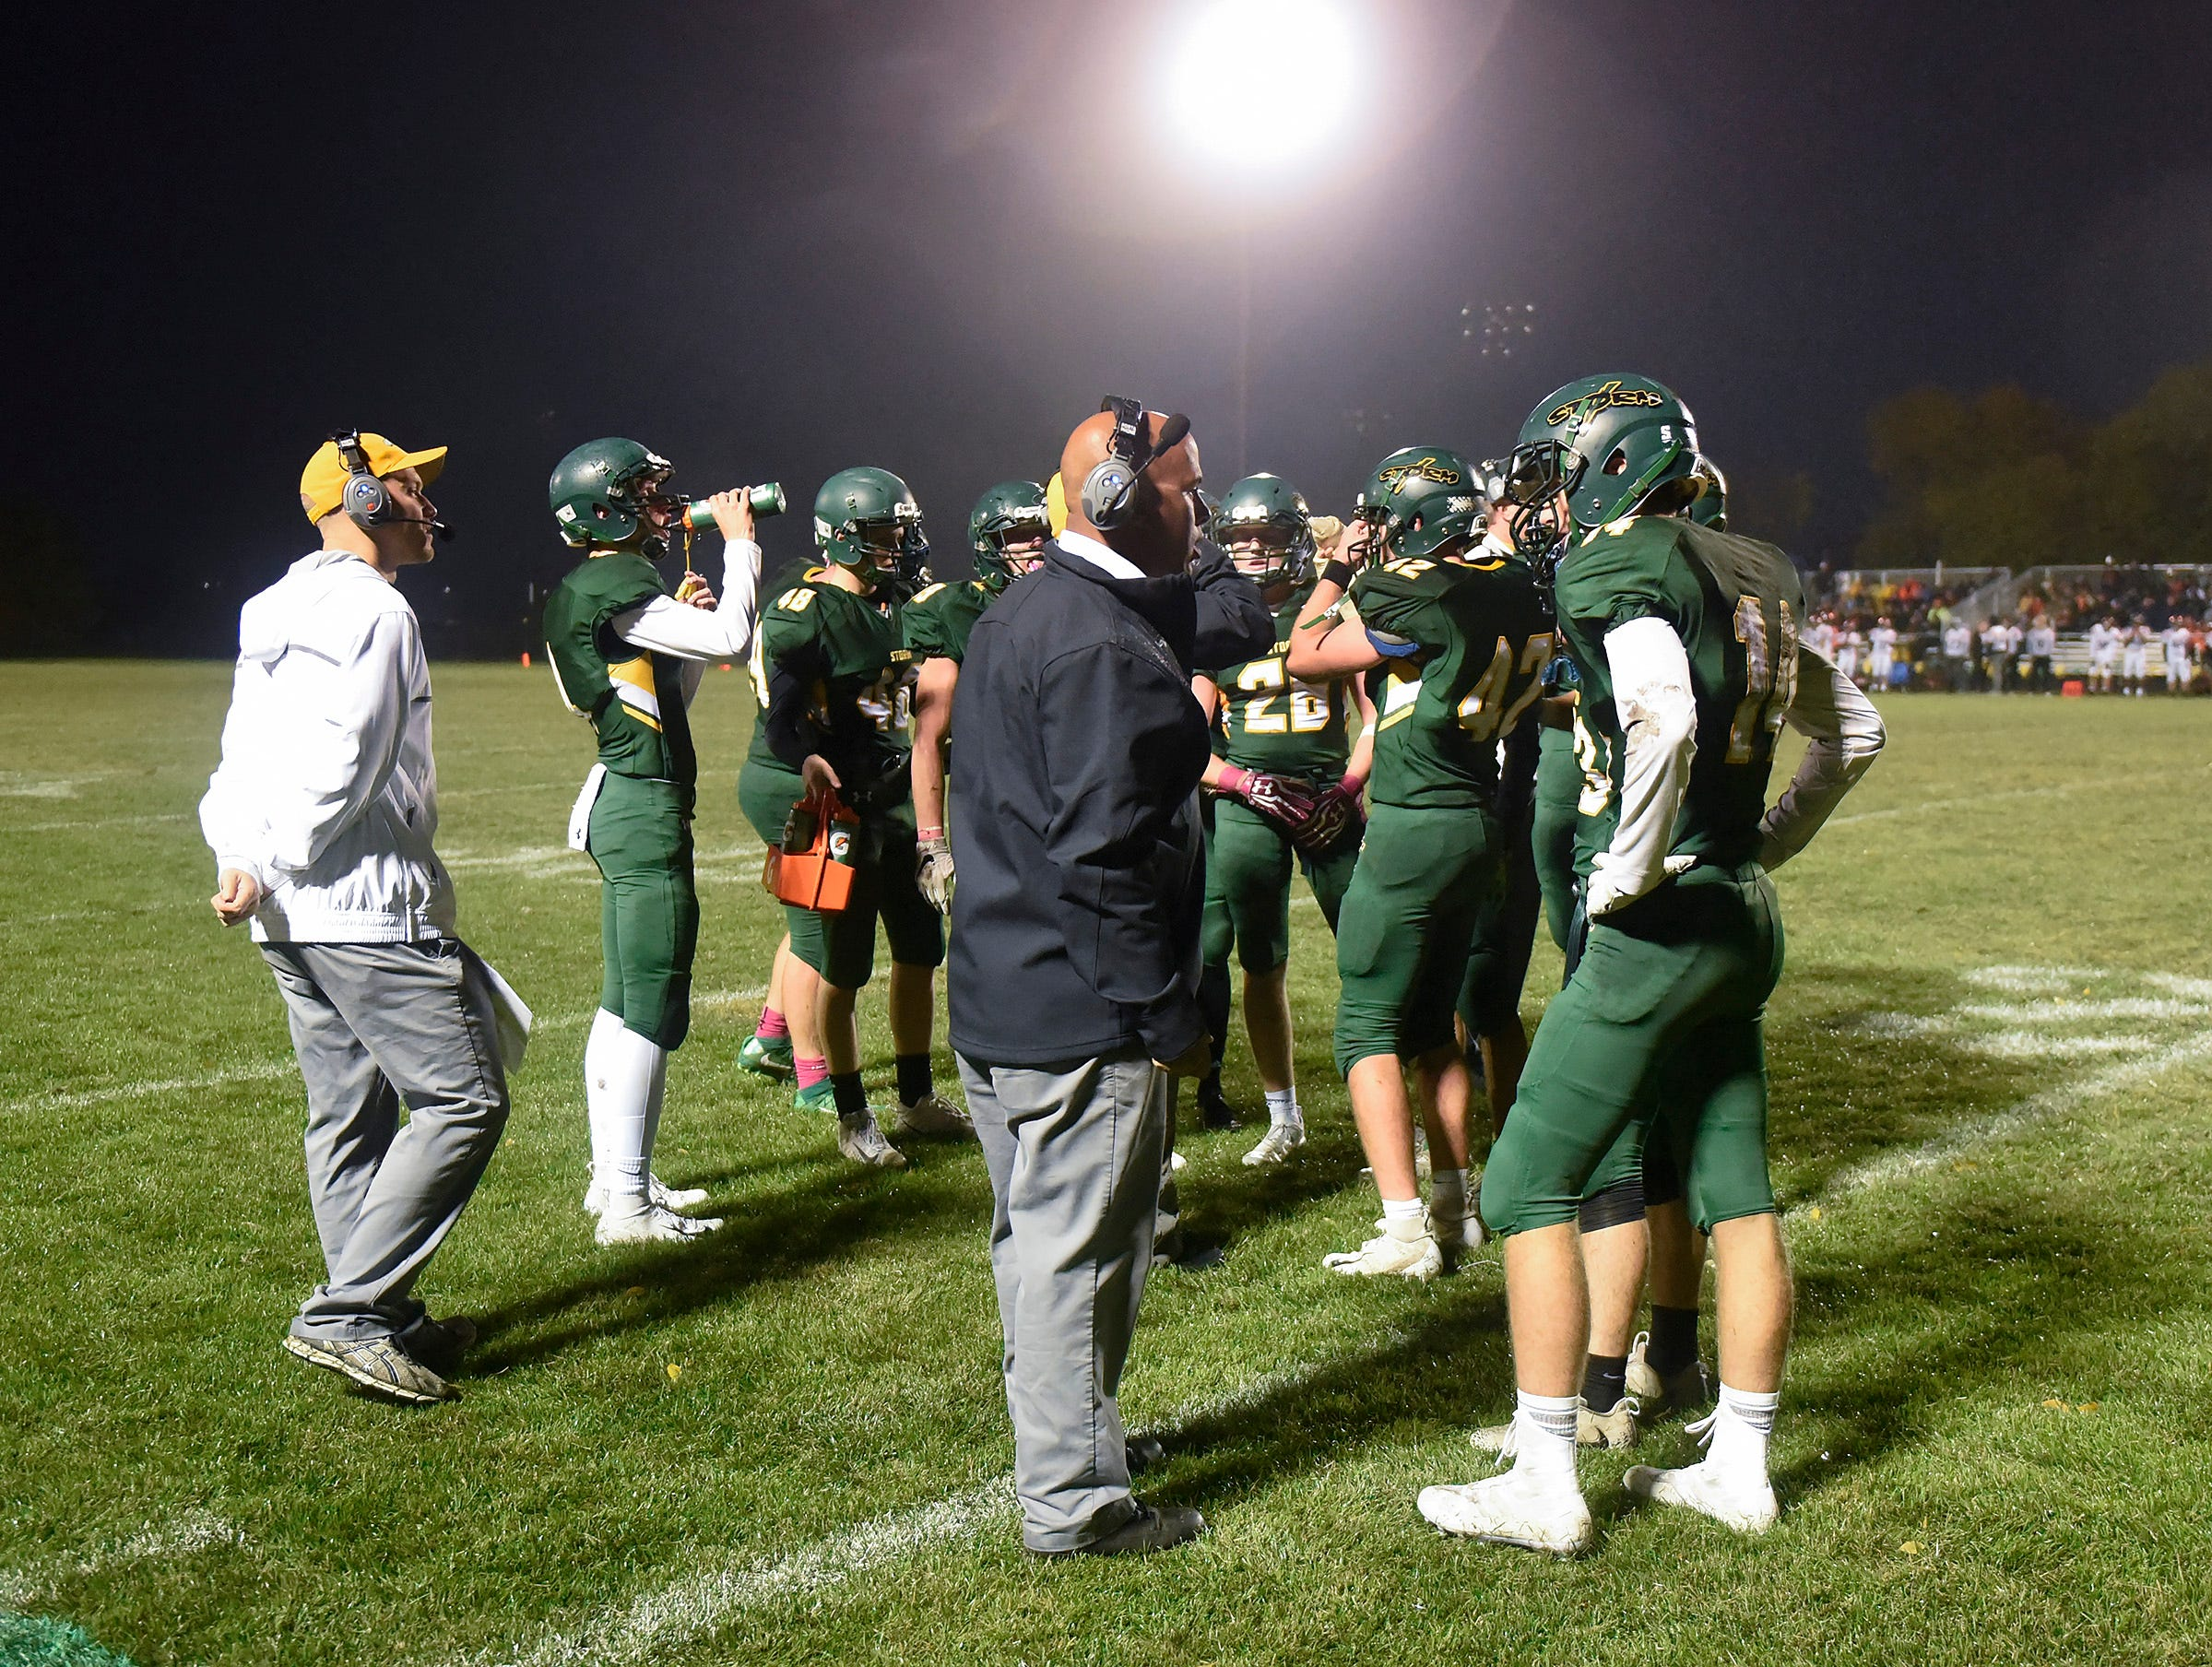 Sauk Rapids players and coaches talk during a timeout during the first half Friday, Oct. 5, in Sauk Rapids.